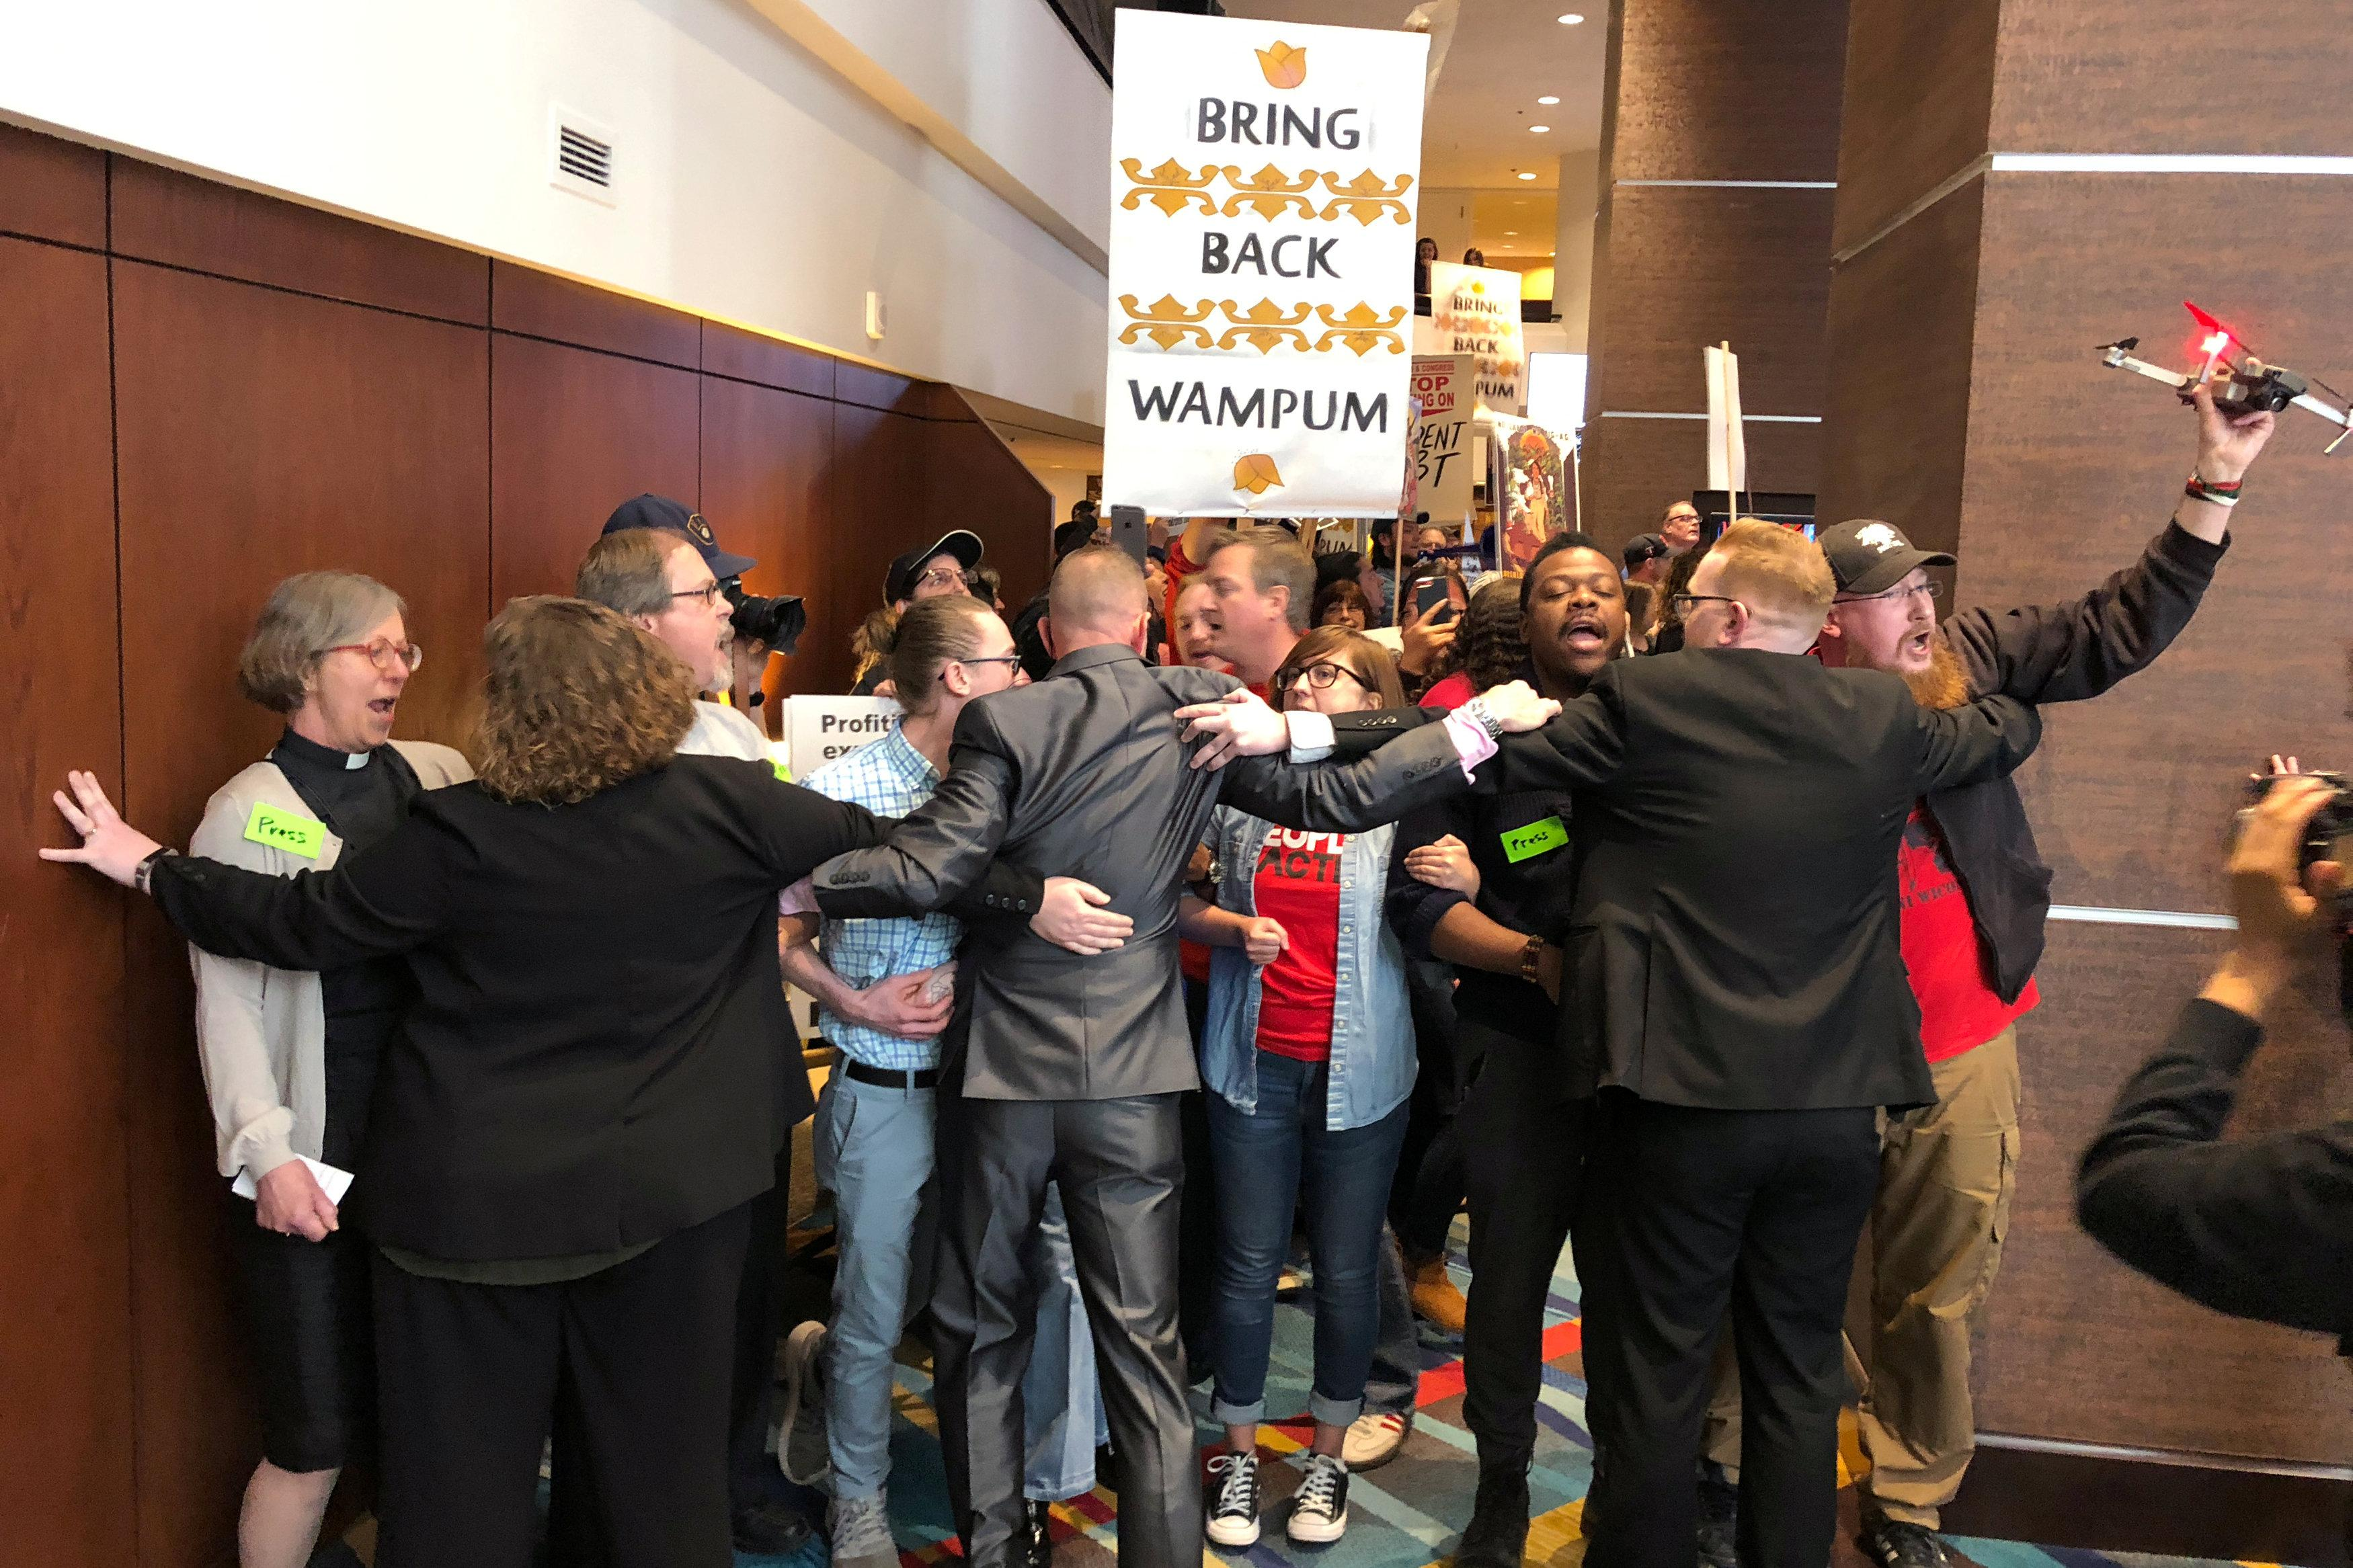 Guards hold back about 100 protestors gathered in a hotel lobby outside Wells Fargo & Co's annual shareholder meeting in Des Moines, Iowa, U.S., April 24, 2018.    Ross Kerber